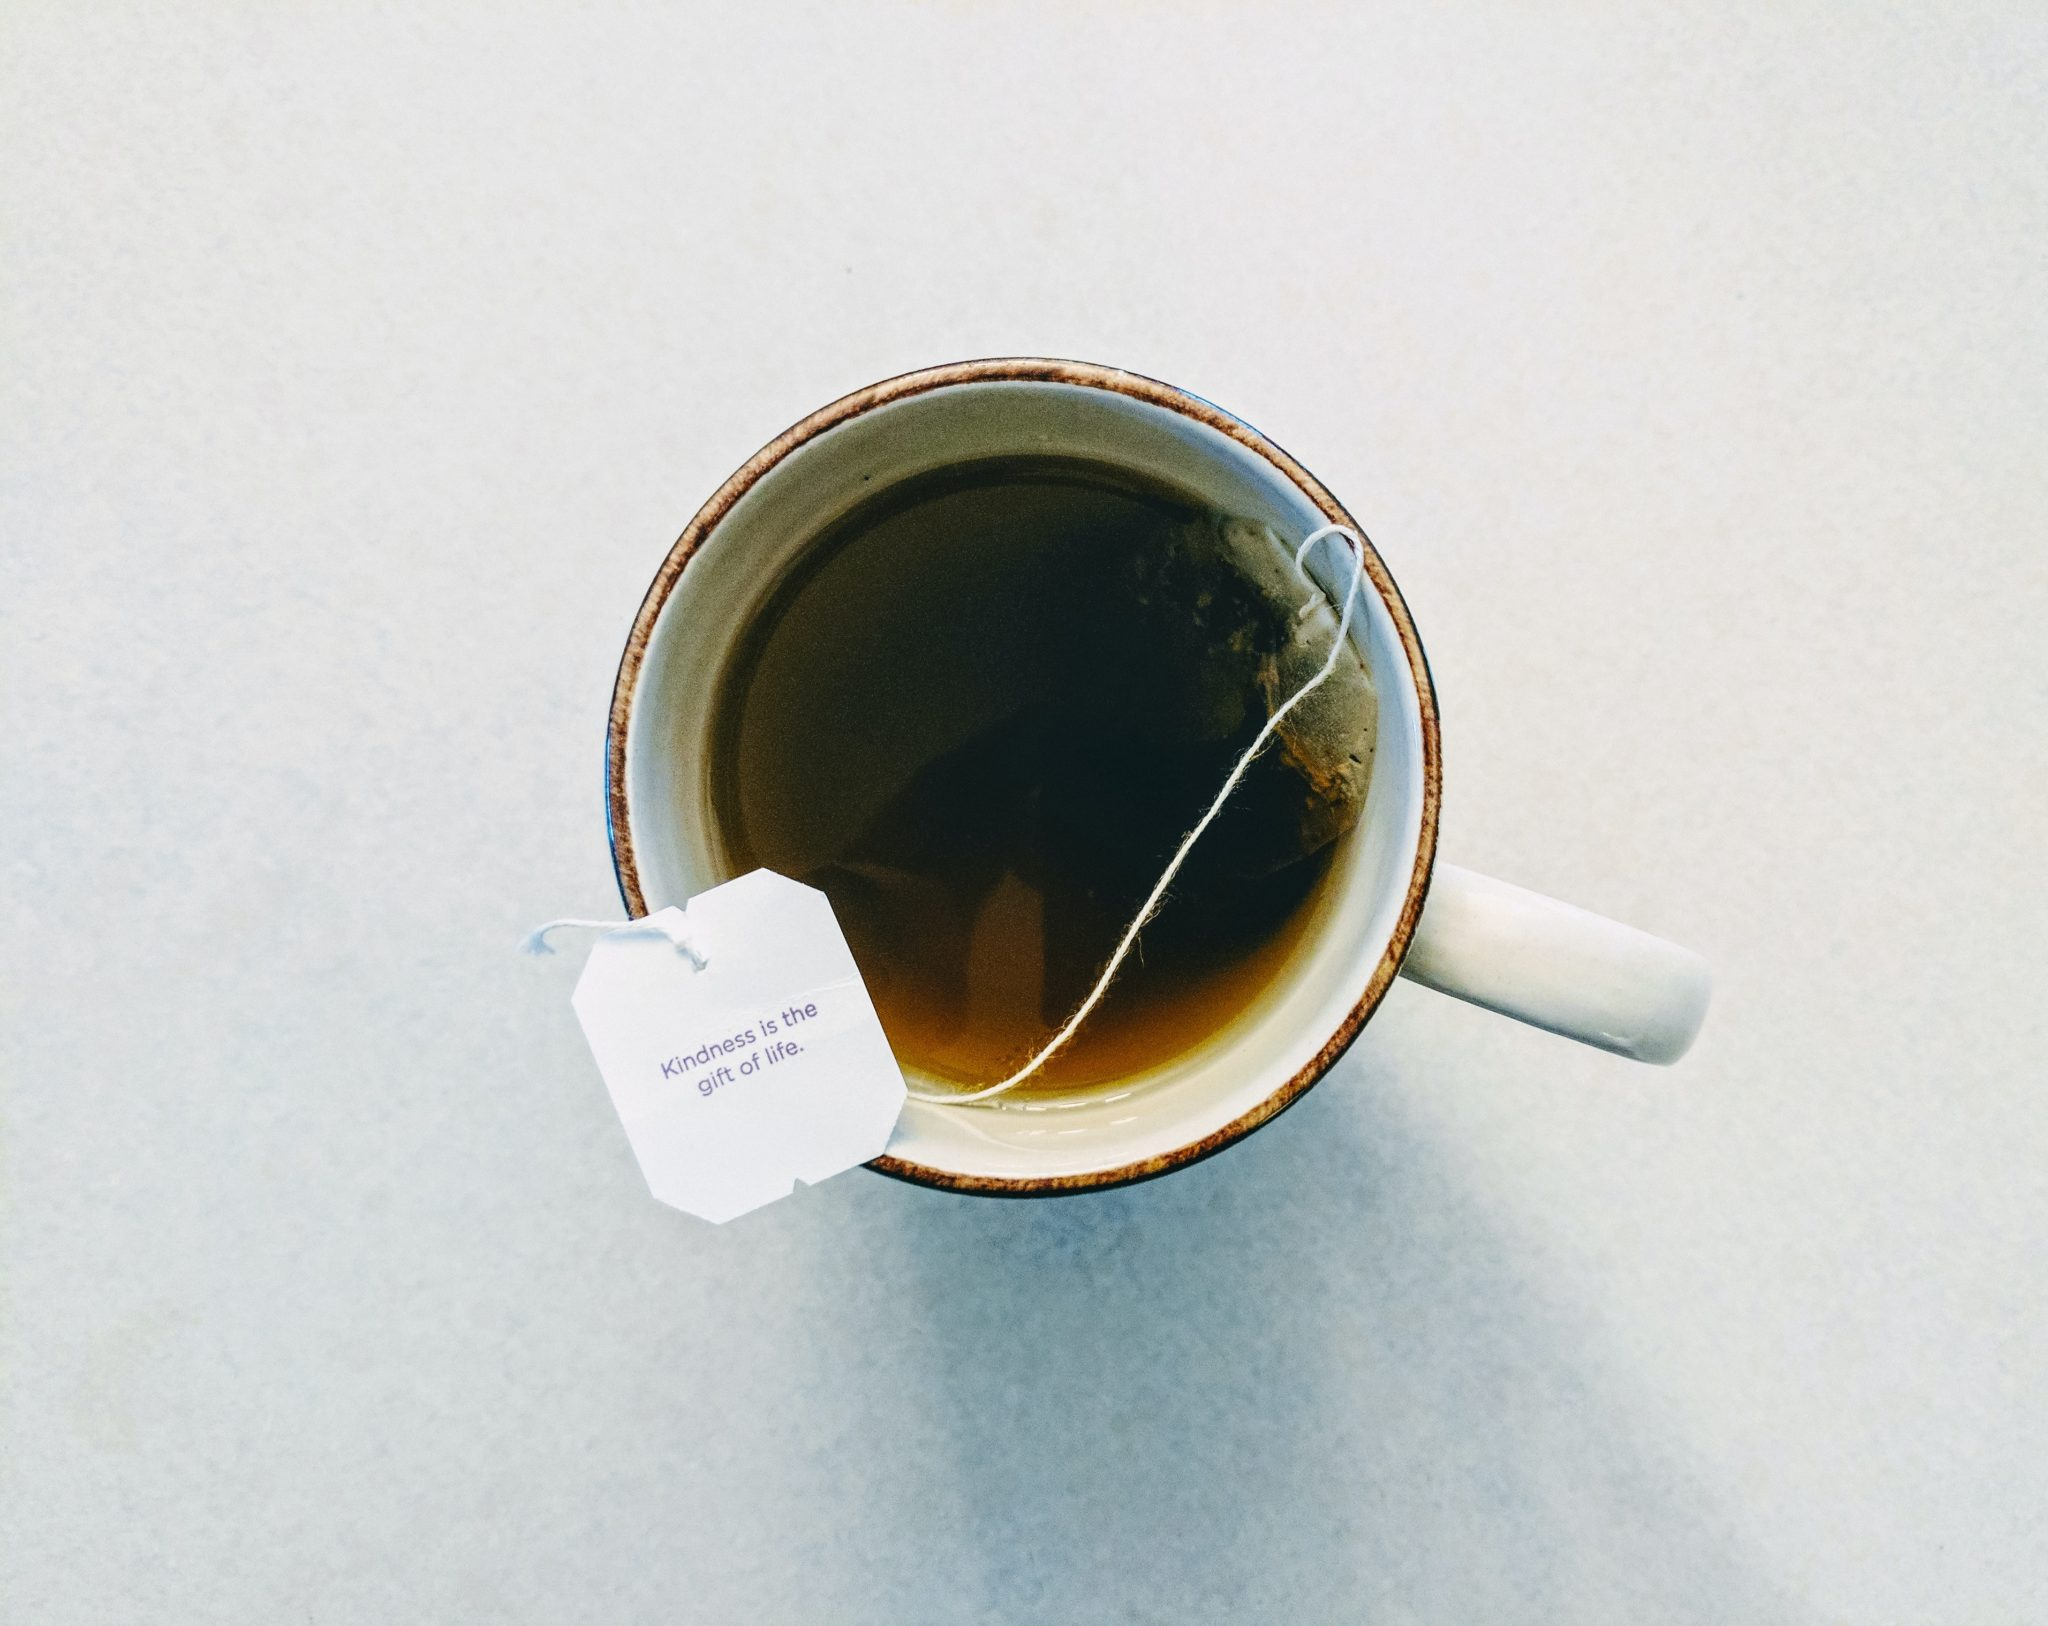 birds eye view of a cup of tea that contains antinutrients like tannins